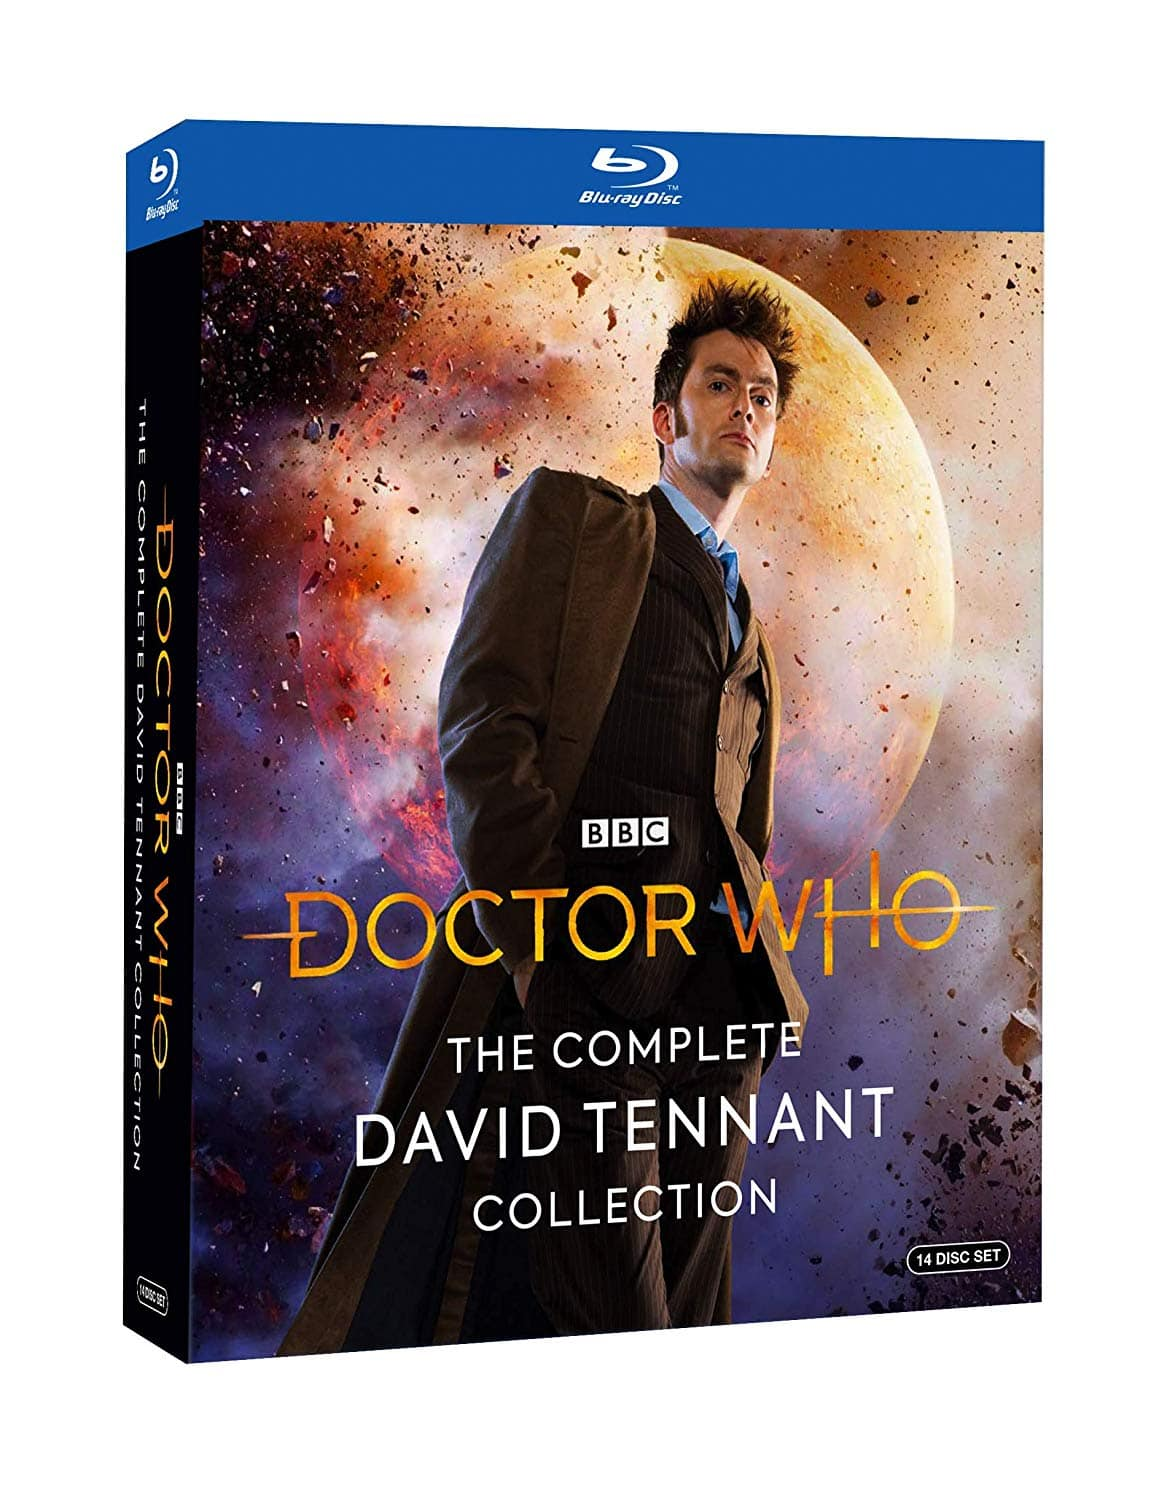 Dr. Who: The Complete David Tennant Collection Pre-Order (14-Disc Set Blu-Ray) $34.99 + Free Shipping via Amazon